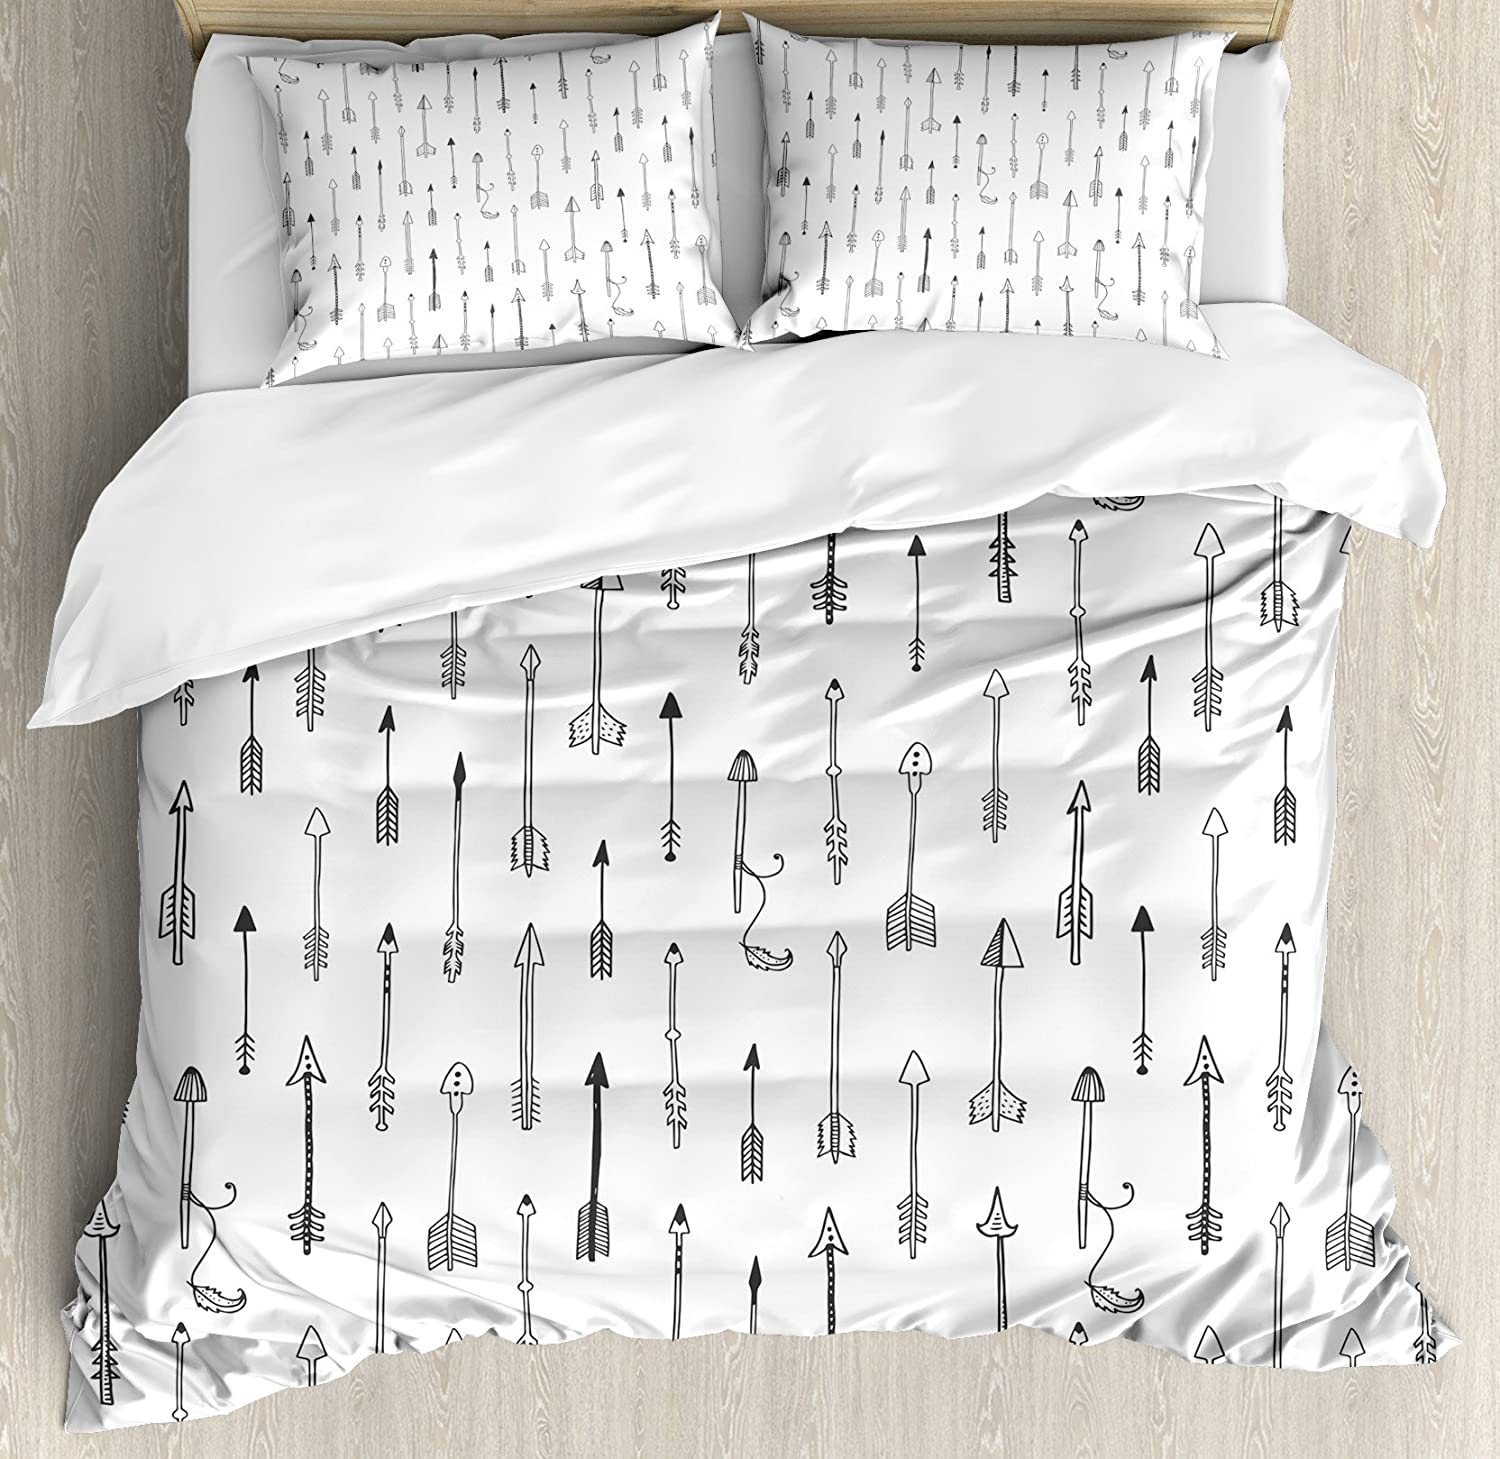 Arrow Decor Duvet Cover Set by Ambesonne, Nostalgic Tribal Weapons Style Contemporary Graphic of Retro Native Arrows Culture Art, 3 Piece Bedding Set with Pillow Shams, Queen Full, Black White